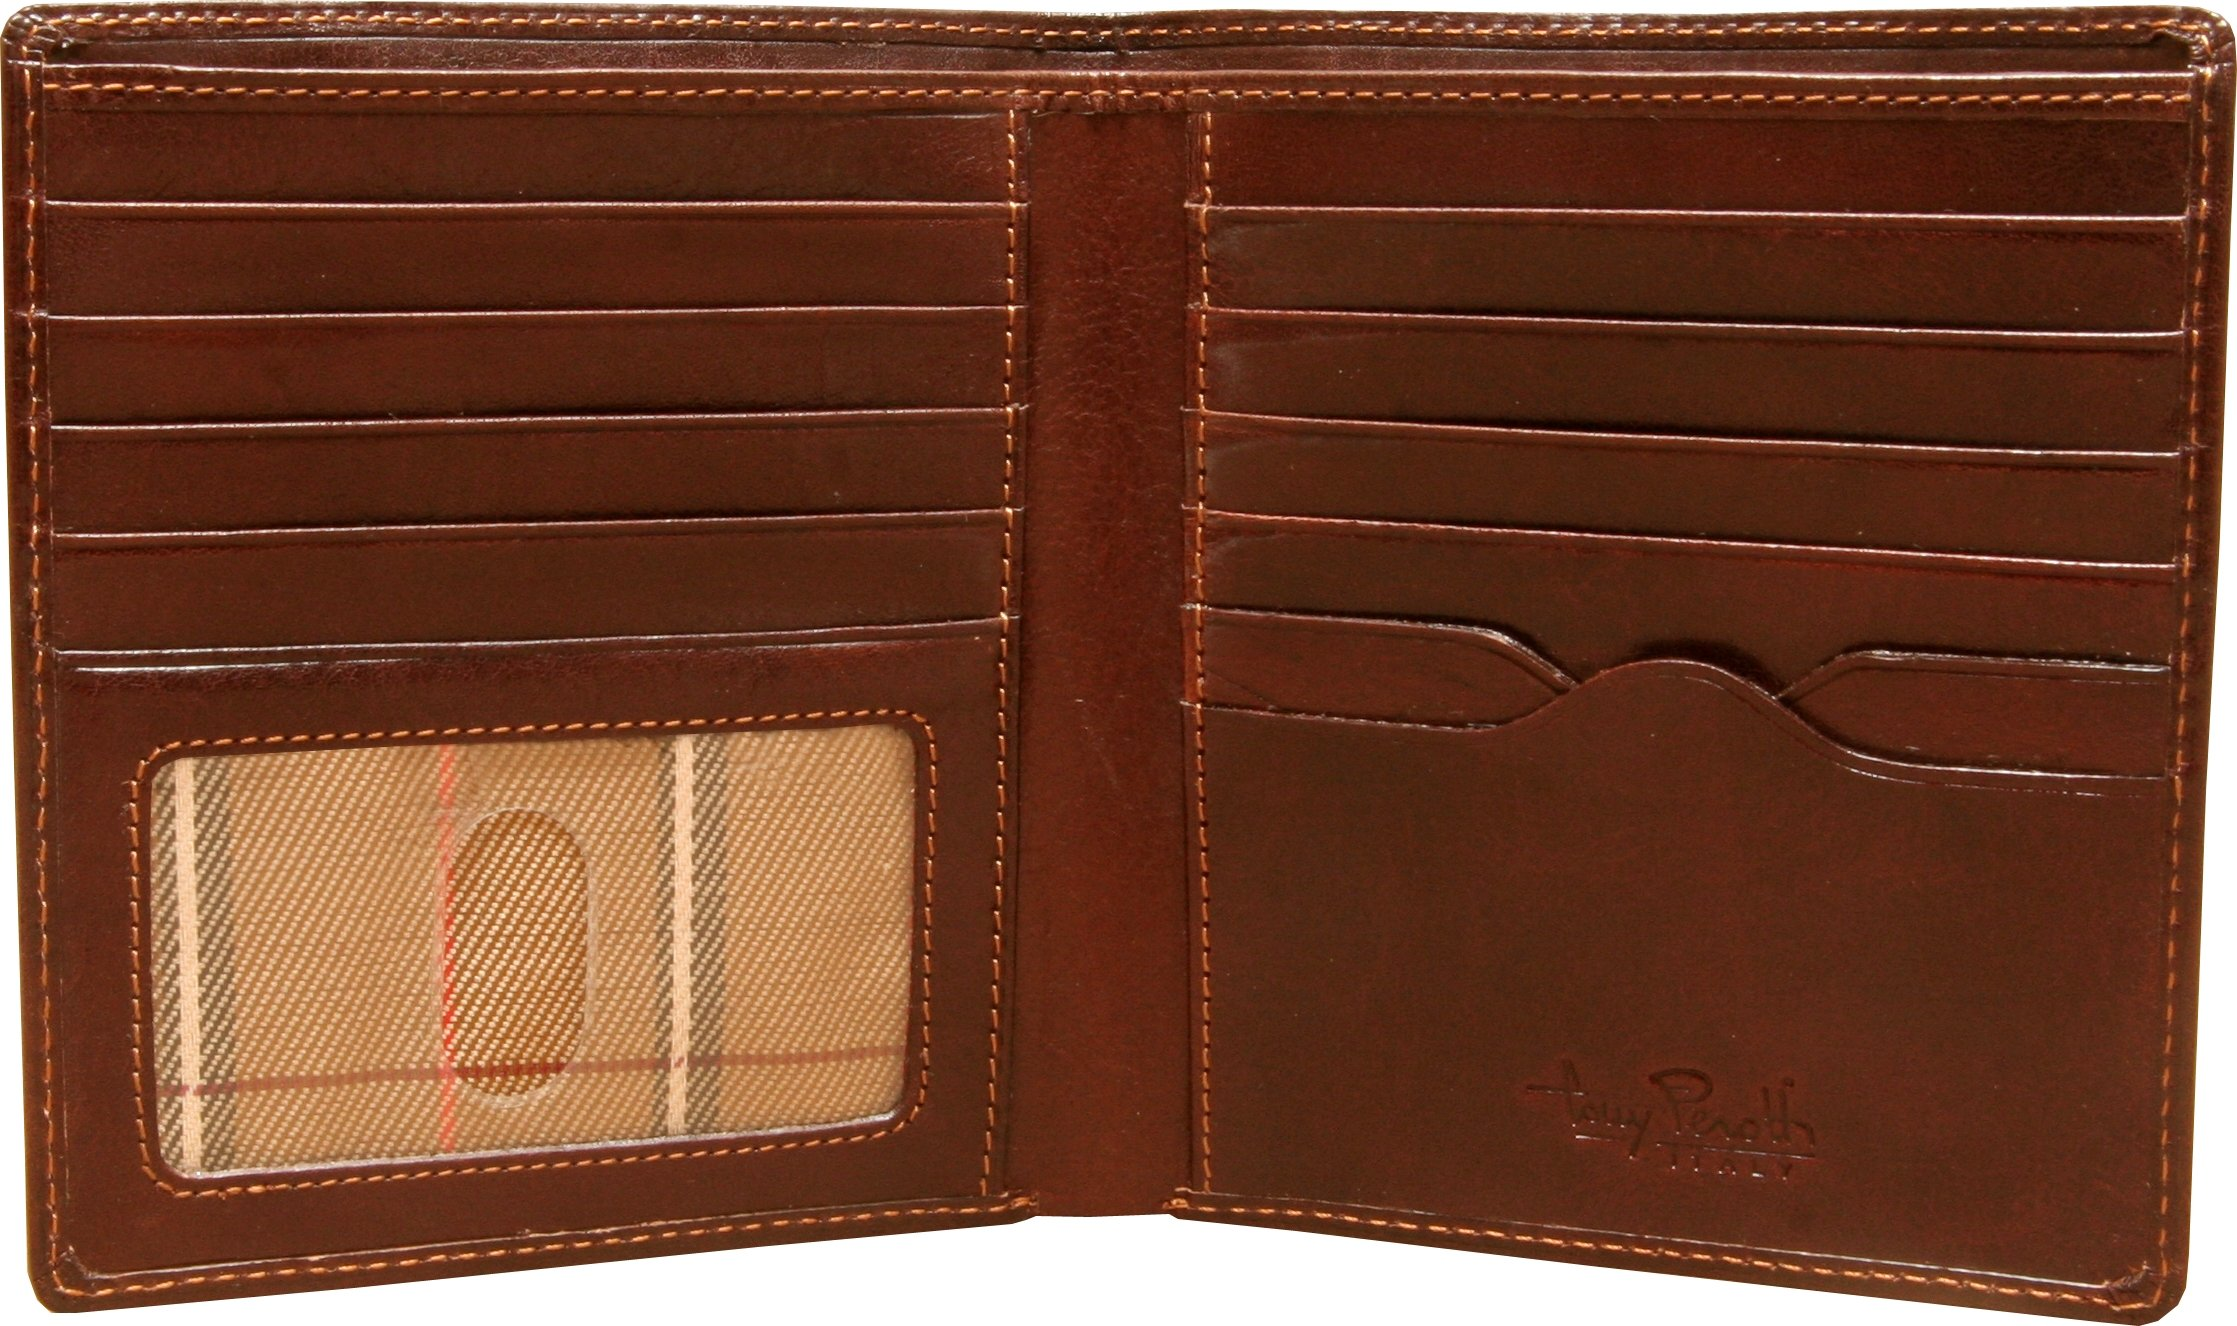 Tony Perotti Italian Leather Classic Hipster Bifold Wallet With Id Window,cognac Bi-Fold Wallet, Cognac by Luggage Depot USA, LLC